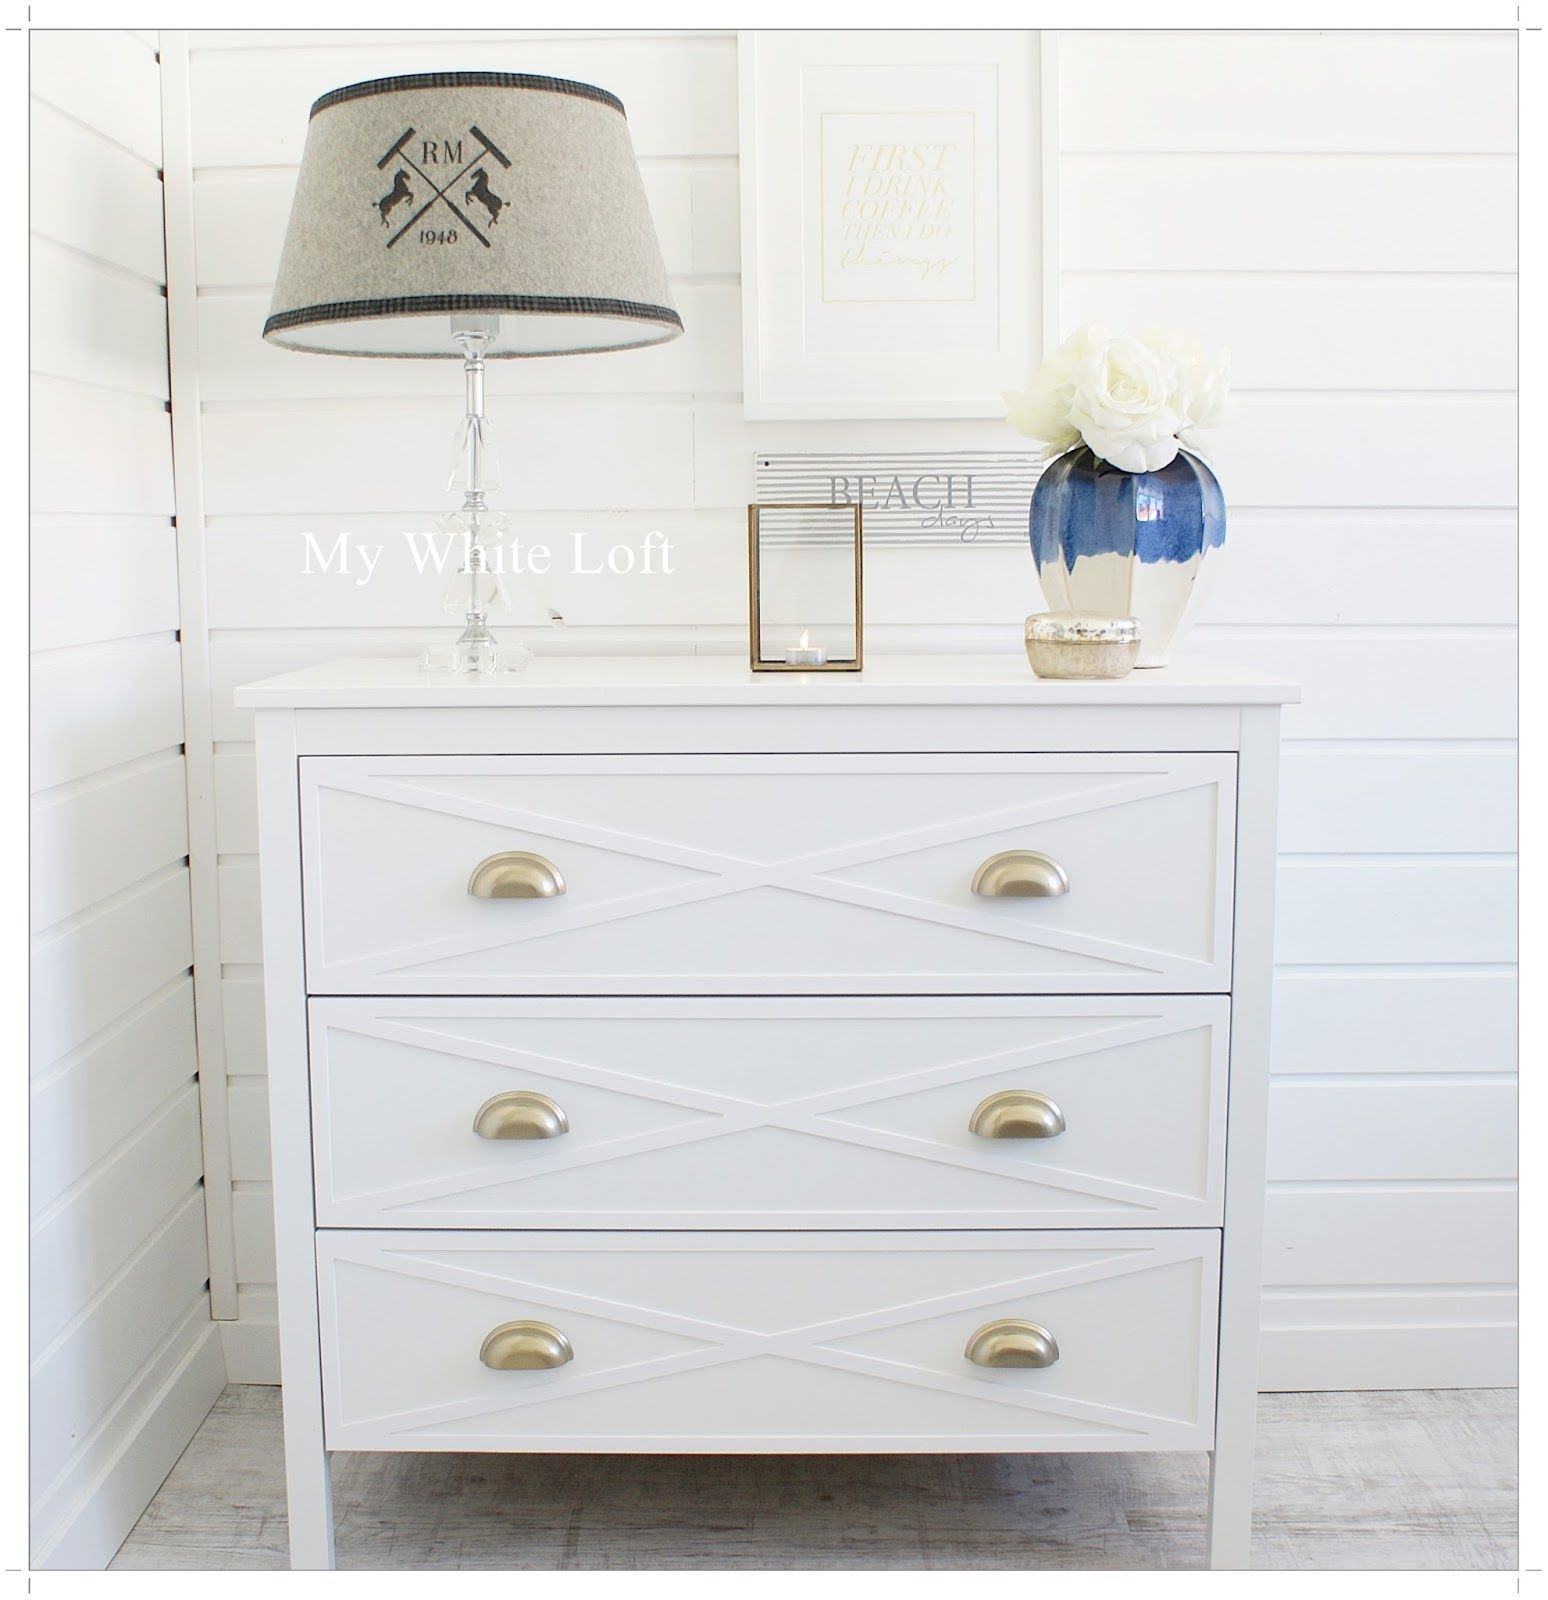 Fascinating Ikea Koppang for Best Drawer Ideas Ikea Hacks Dresser Ikea Koppang Ikea Dresser